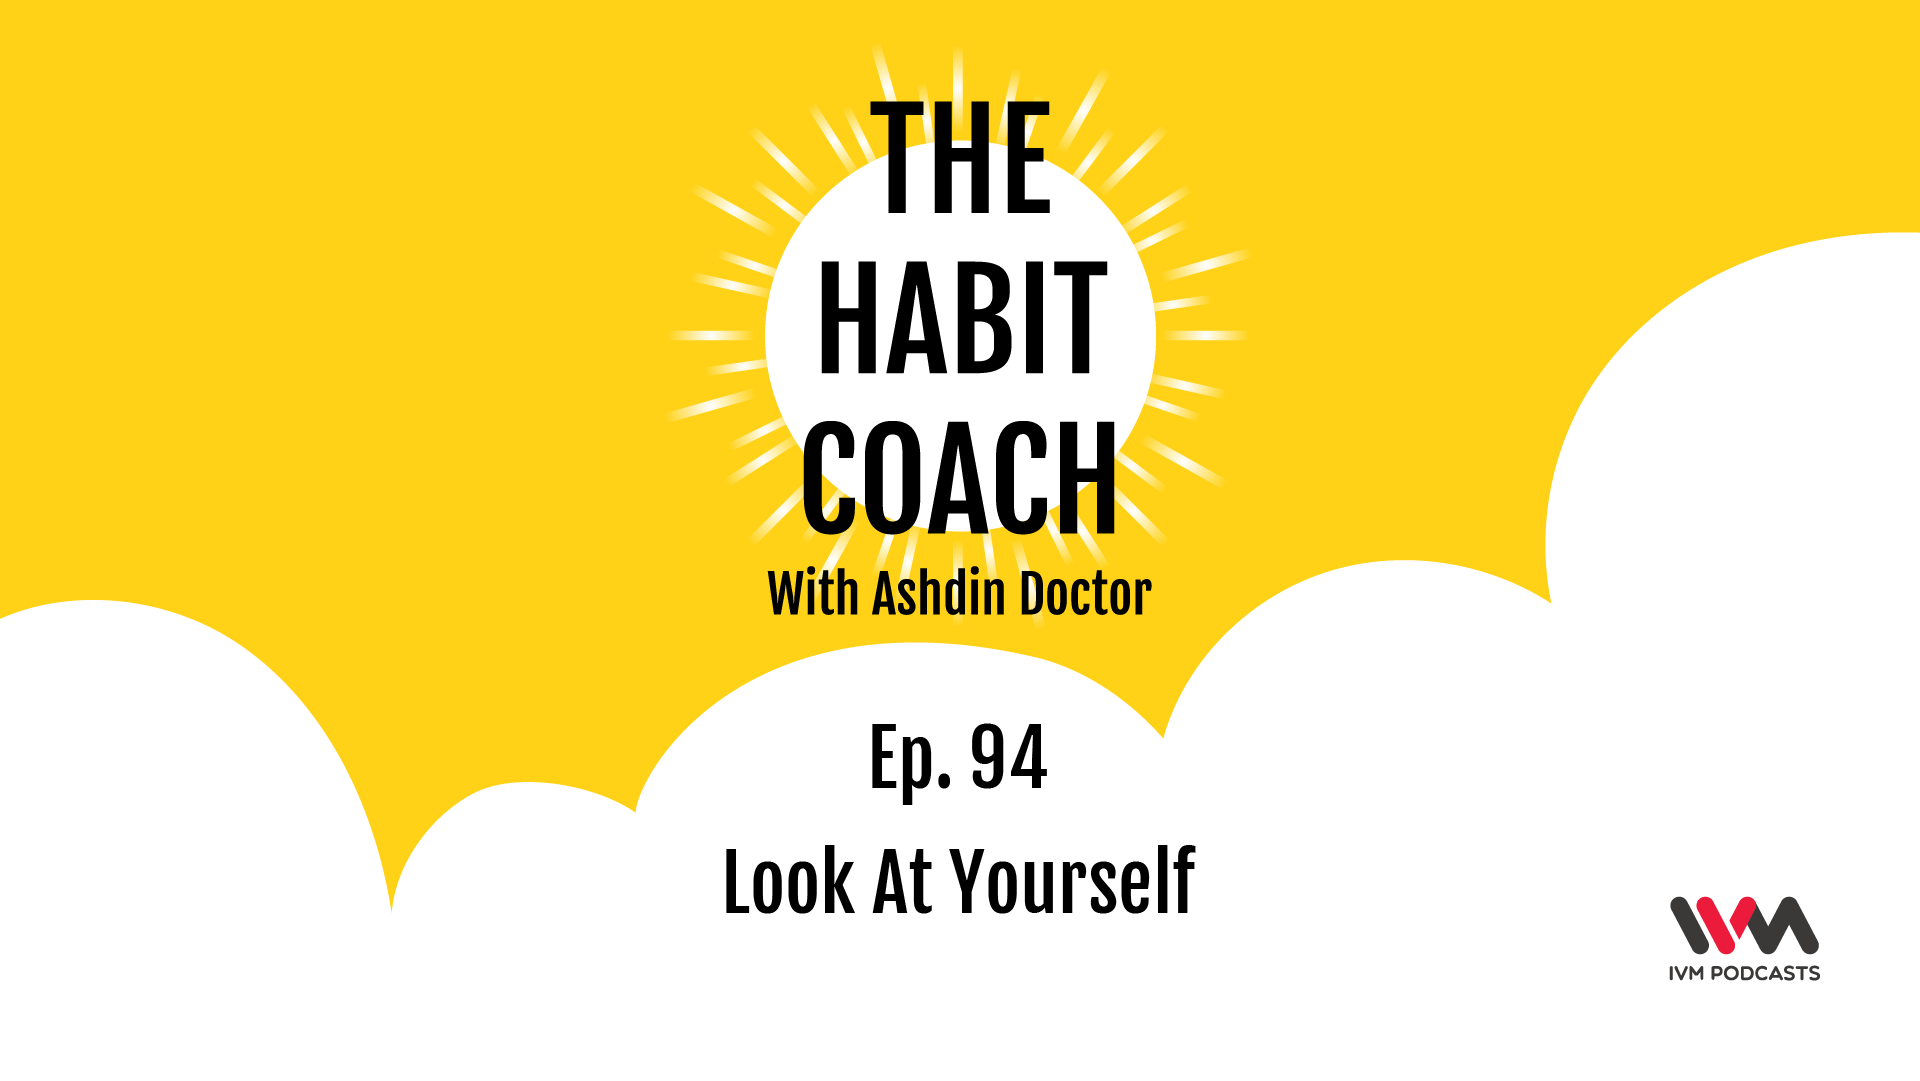 TheHabitCoachEpisode94.png